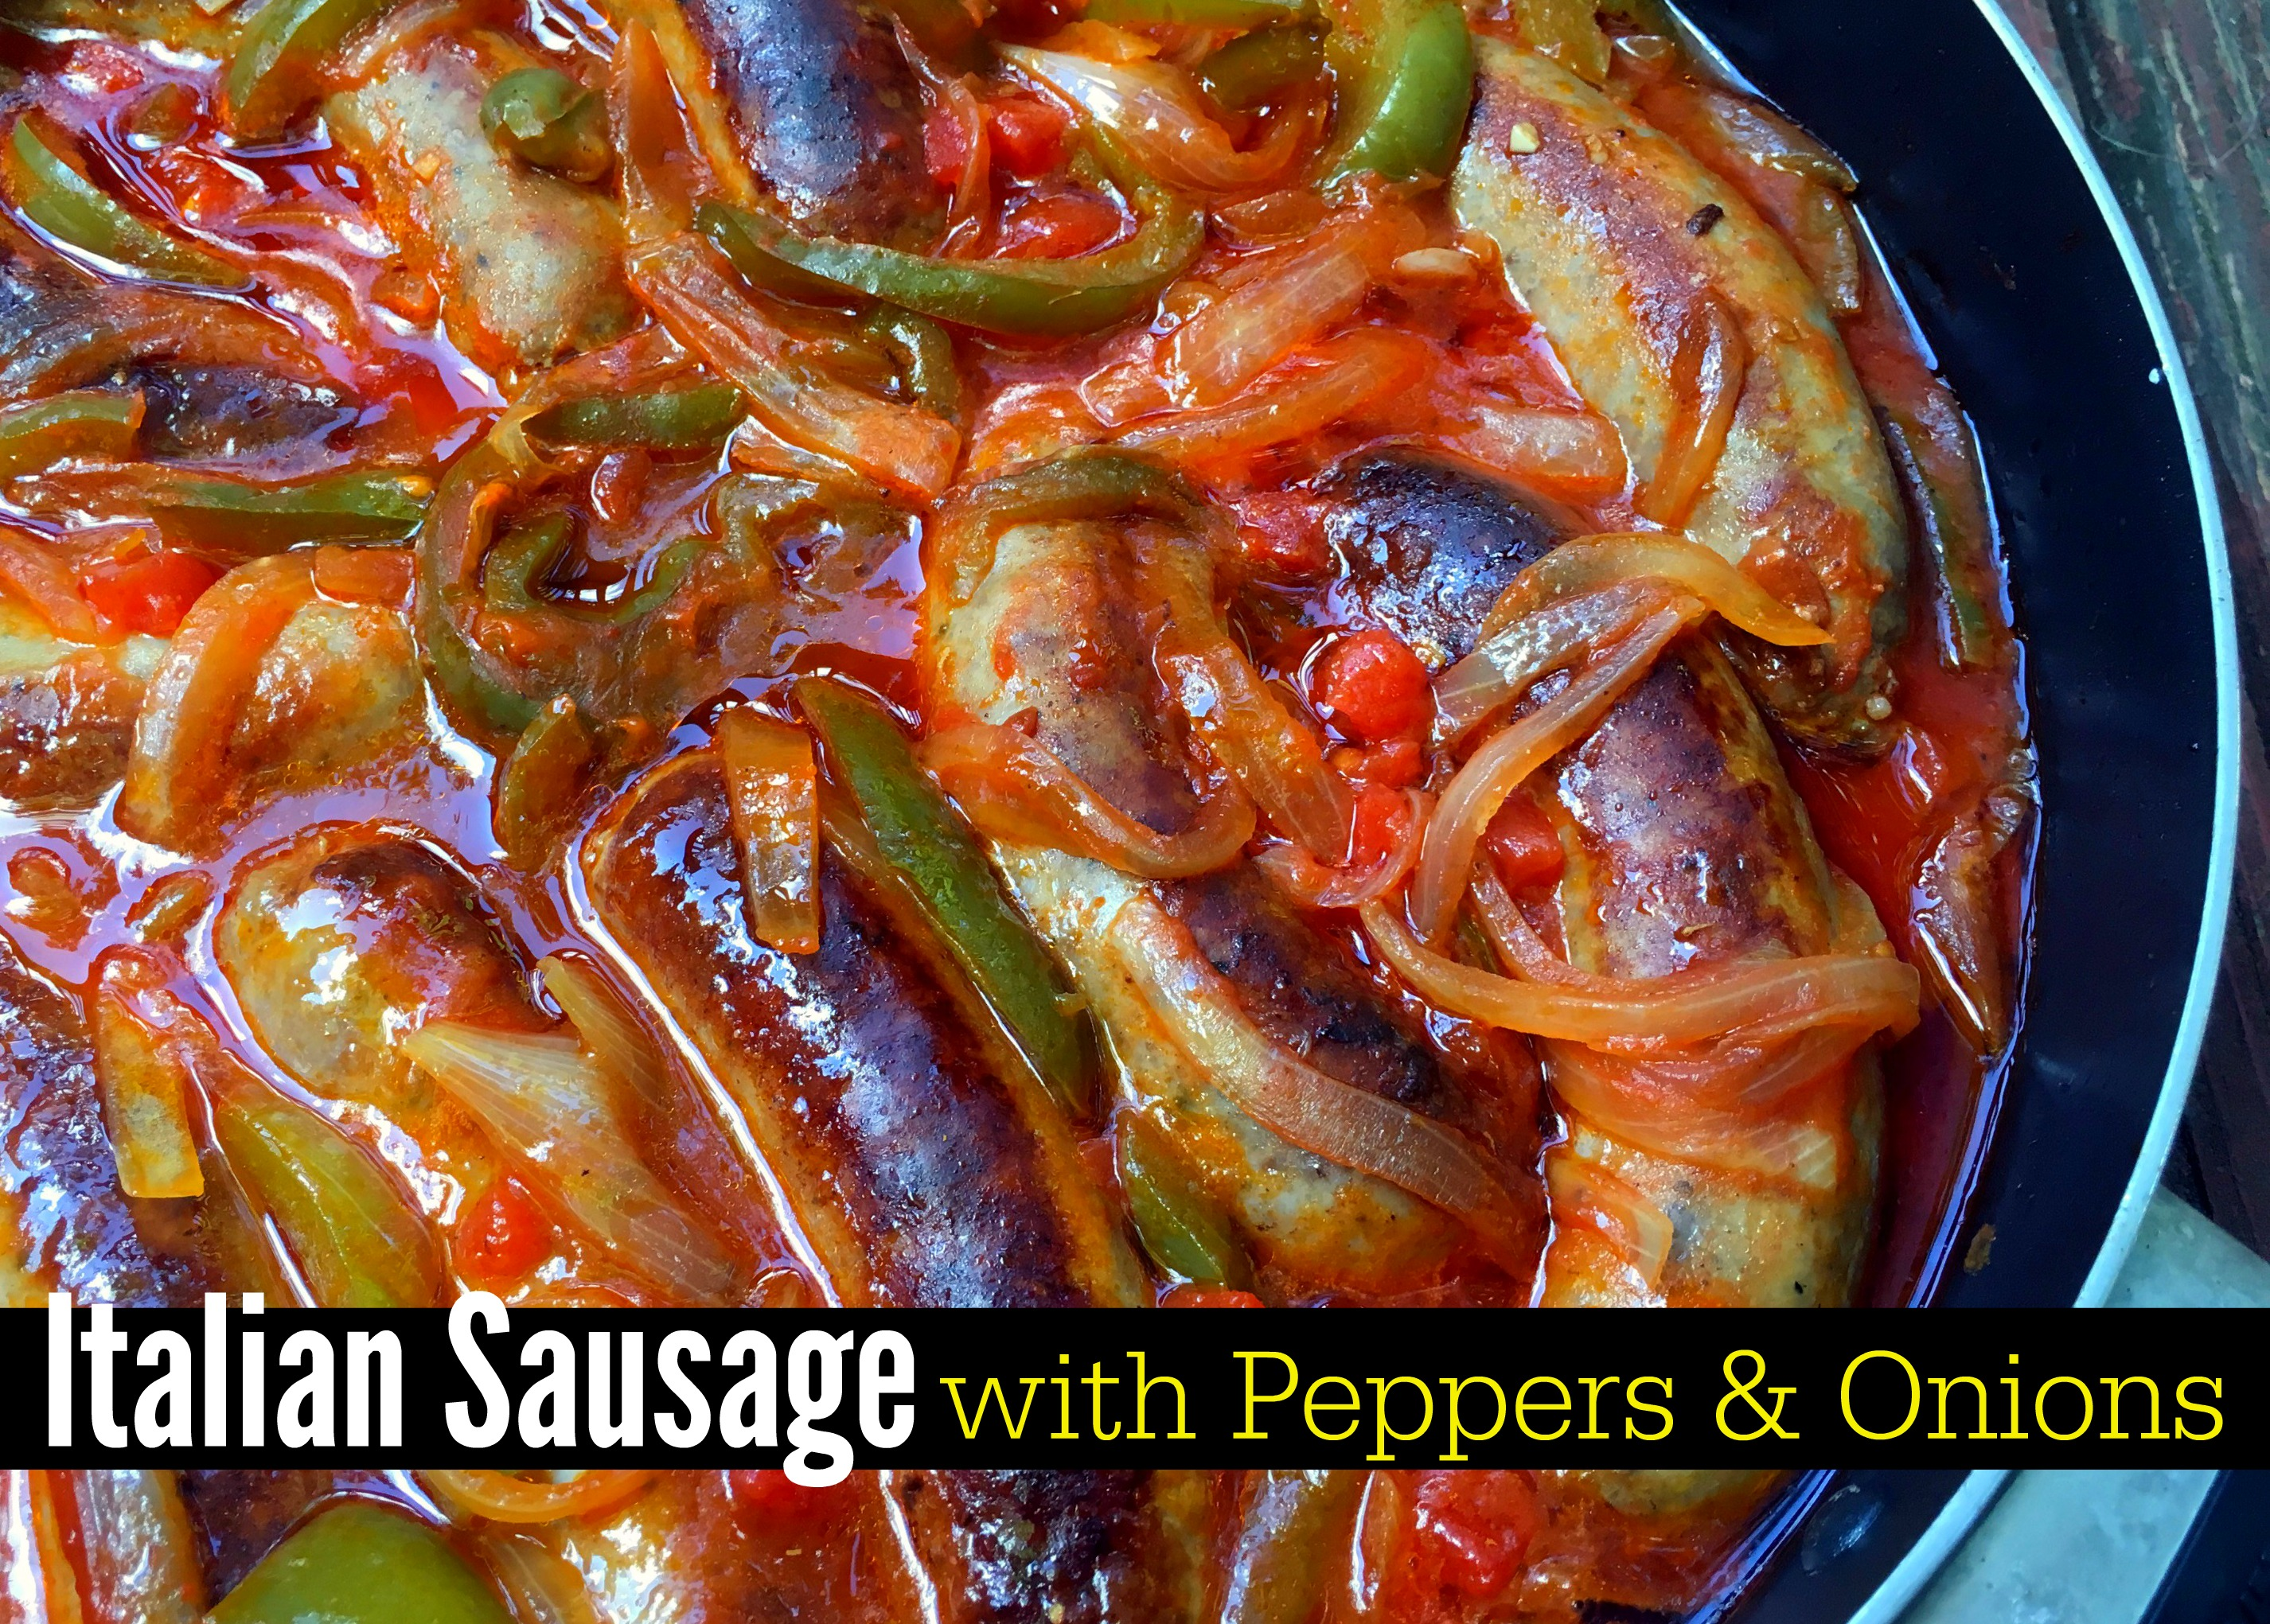 Italian Sausage with Peppers & Onions